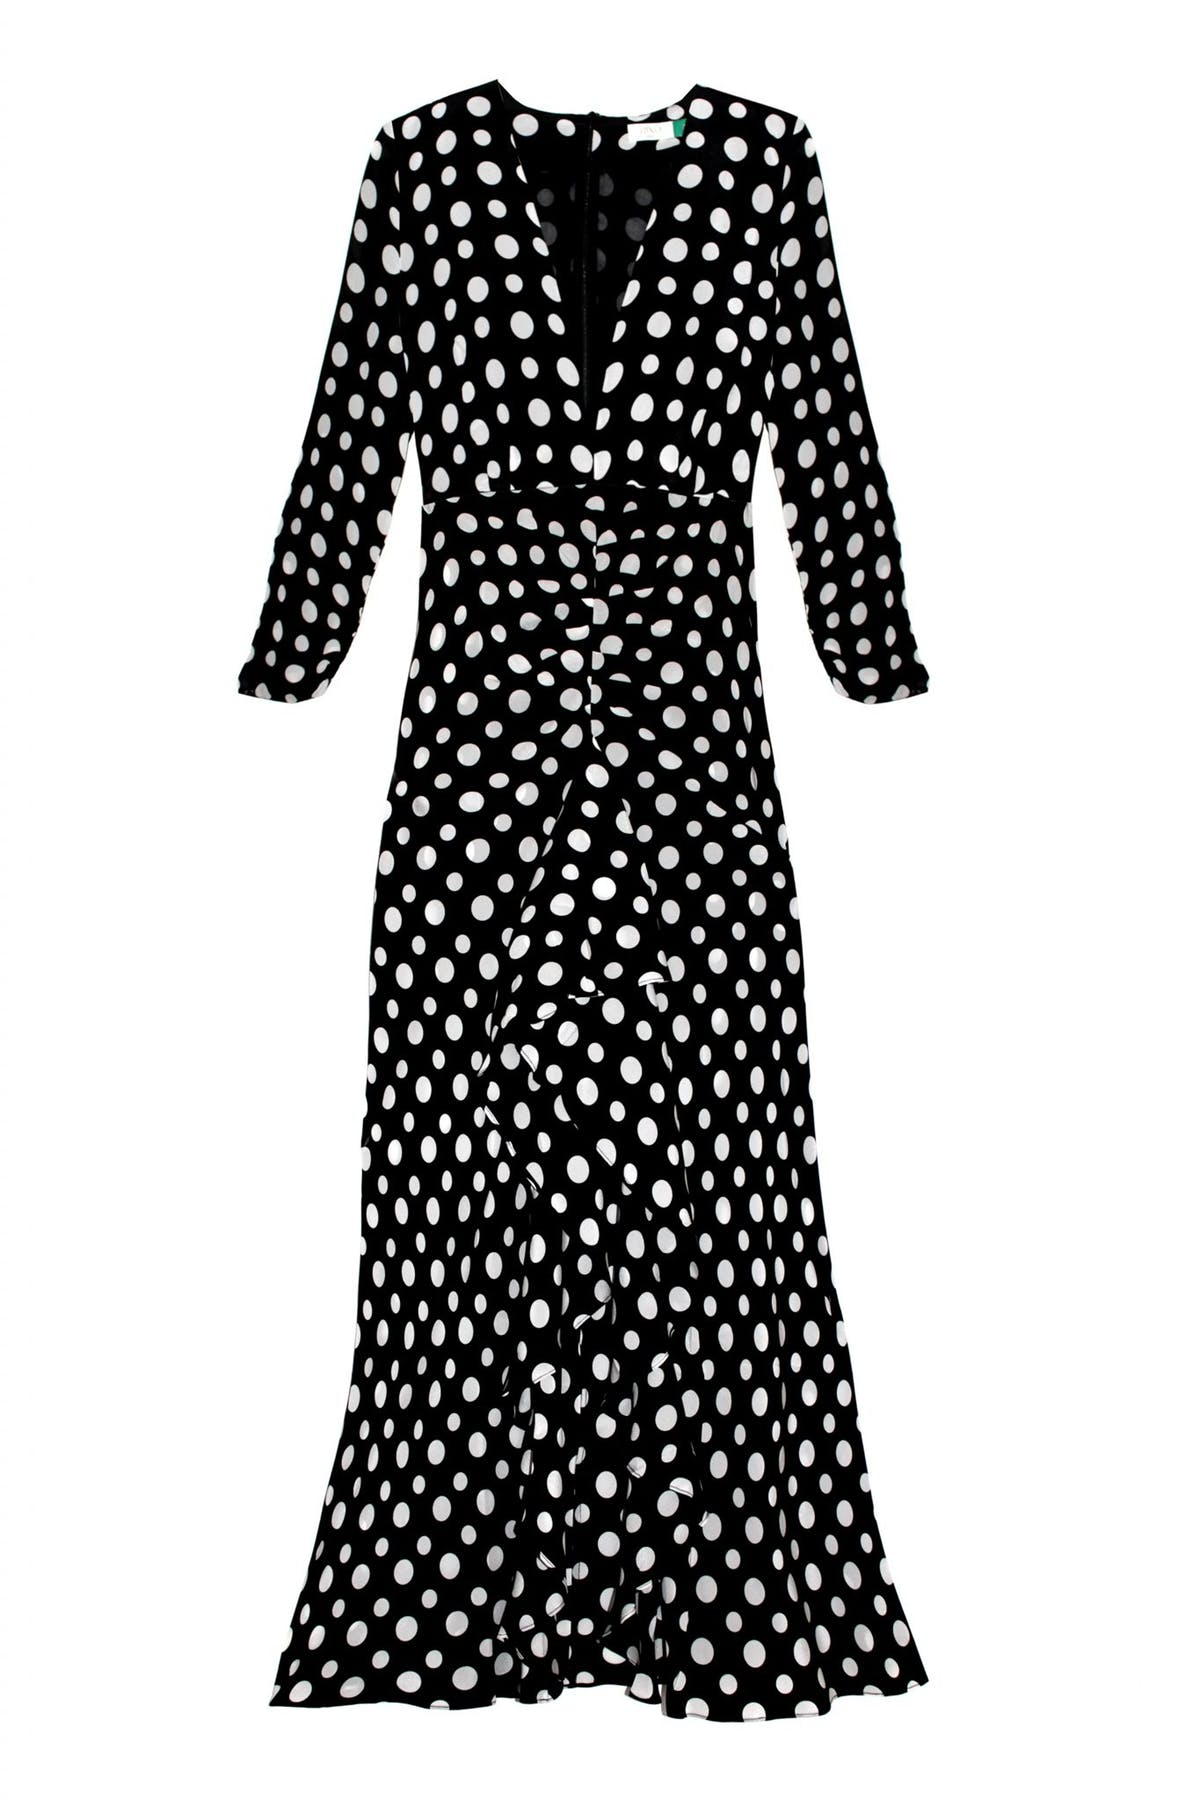 Rixo London Adriana Midi Polkadot dress Preview Images